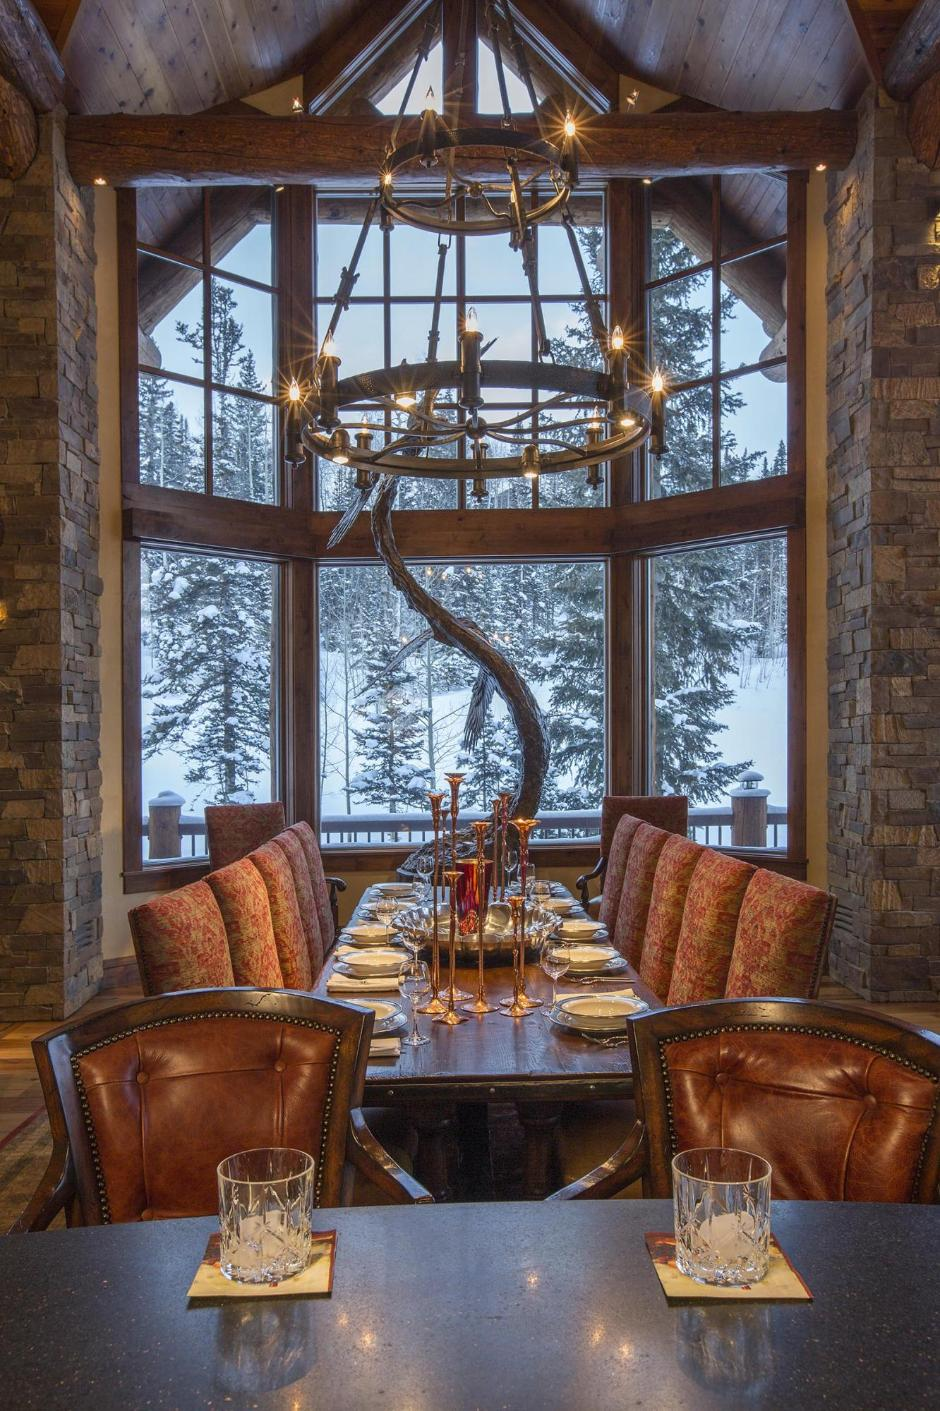 134 Dining Room - Mountain Retreat in Colorado